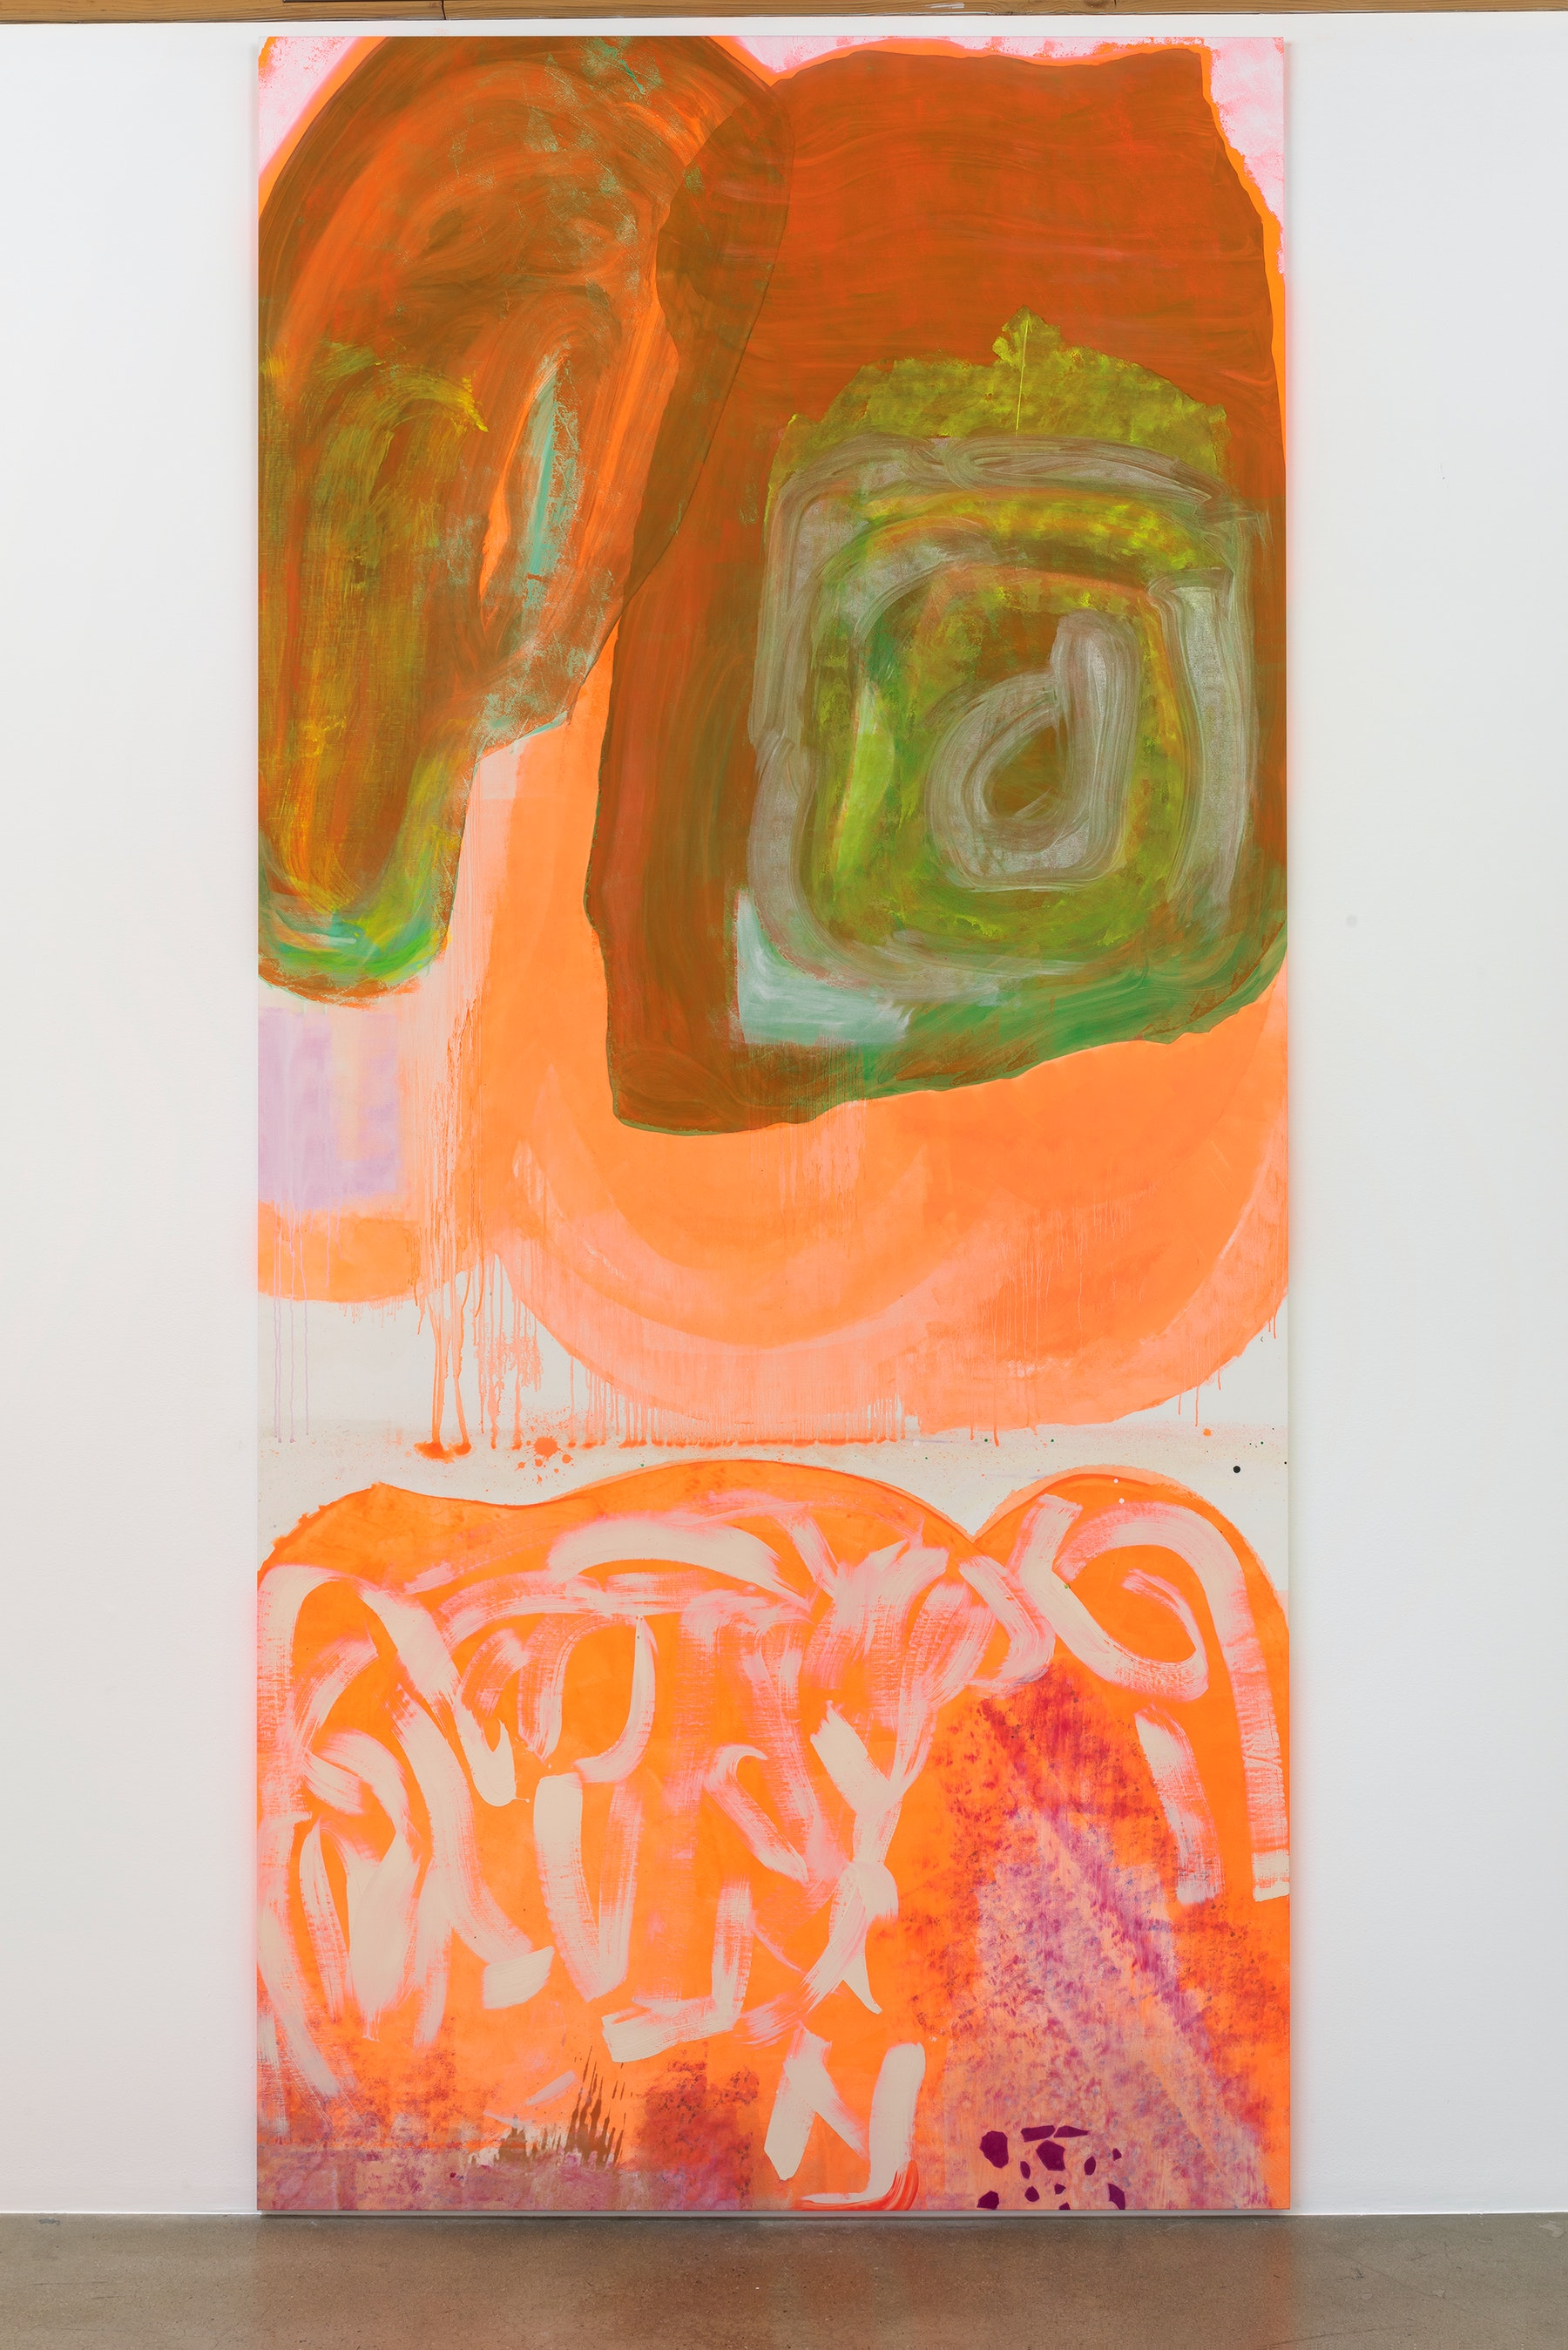 """Monique Van Genderen """"Untitled,"""" 2016 Oil and pigment on linen 13' 9"""" x 78"""" x 1 ¹⁄₄"""" [HxWxD] (419.1 x 198.12 x 3.18 cm) Inventory #VGE337 Courtesy of the artist and Vielmetter Los Angeles Photo credit: Robert Wedemeyer"""